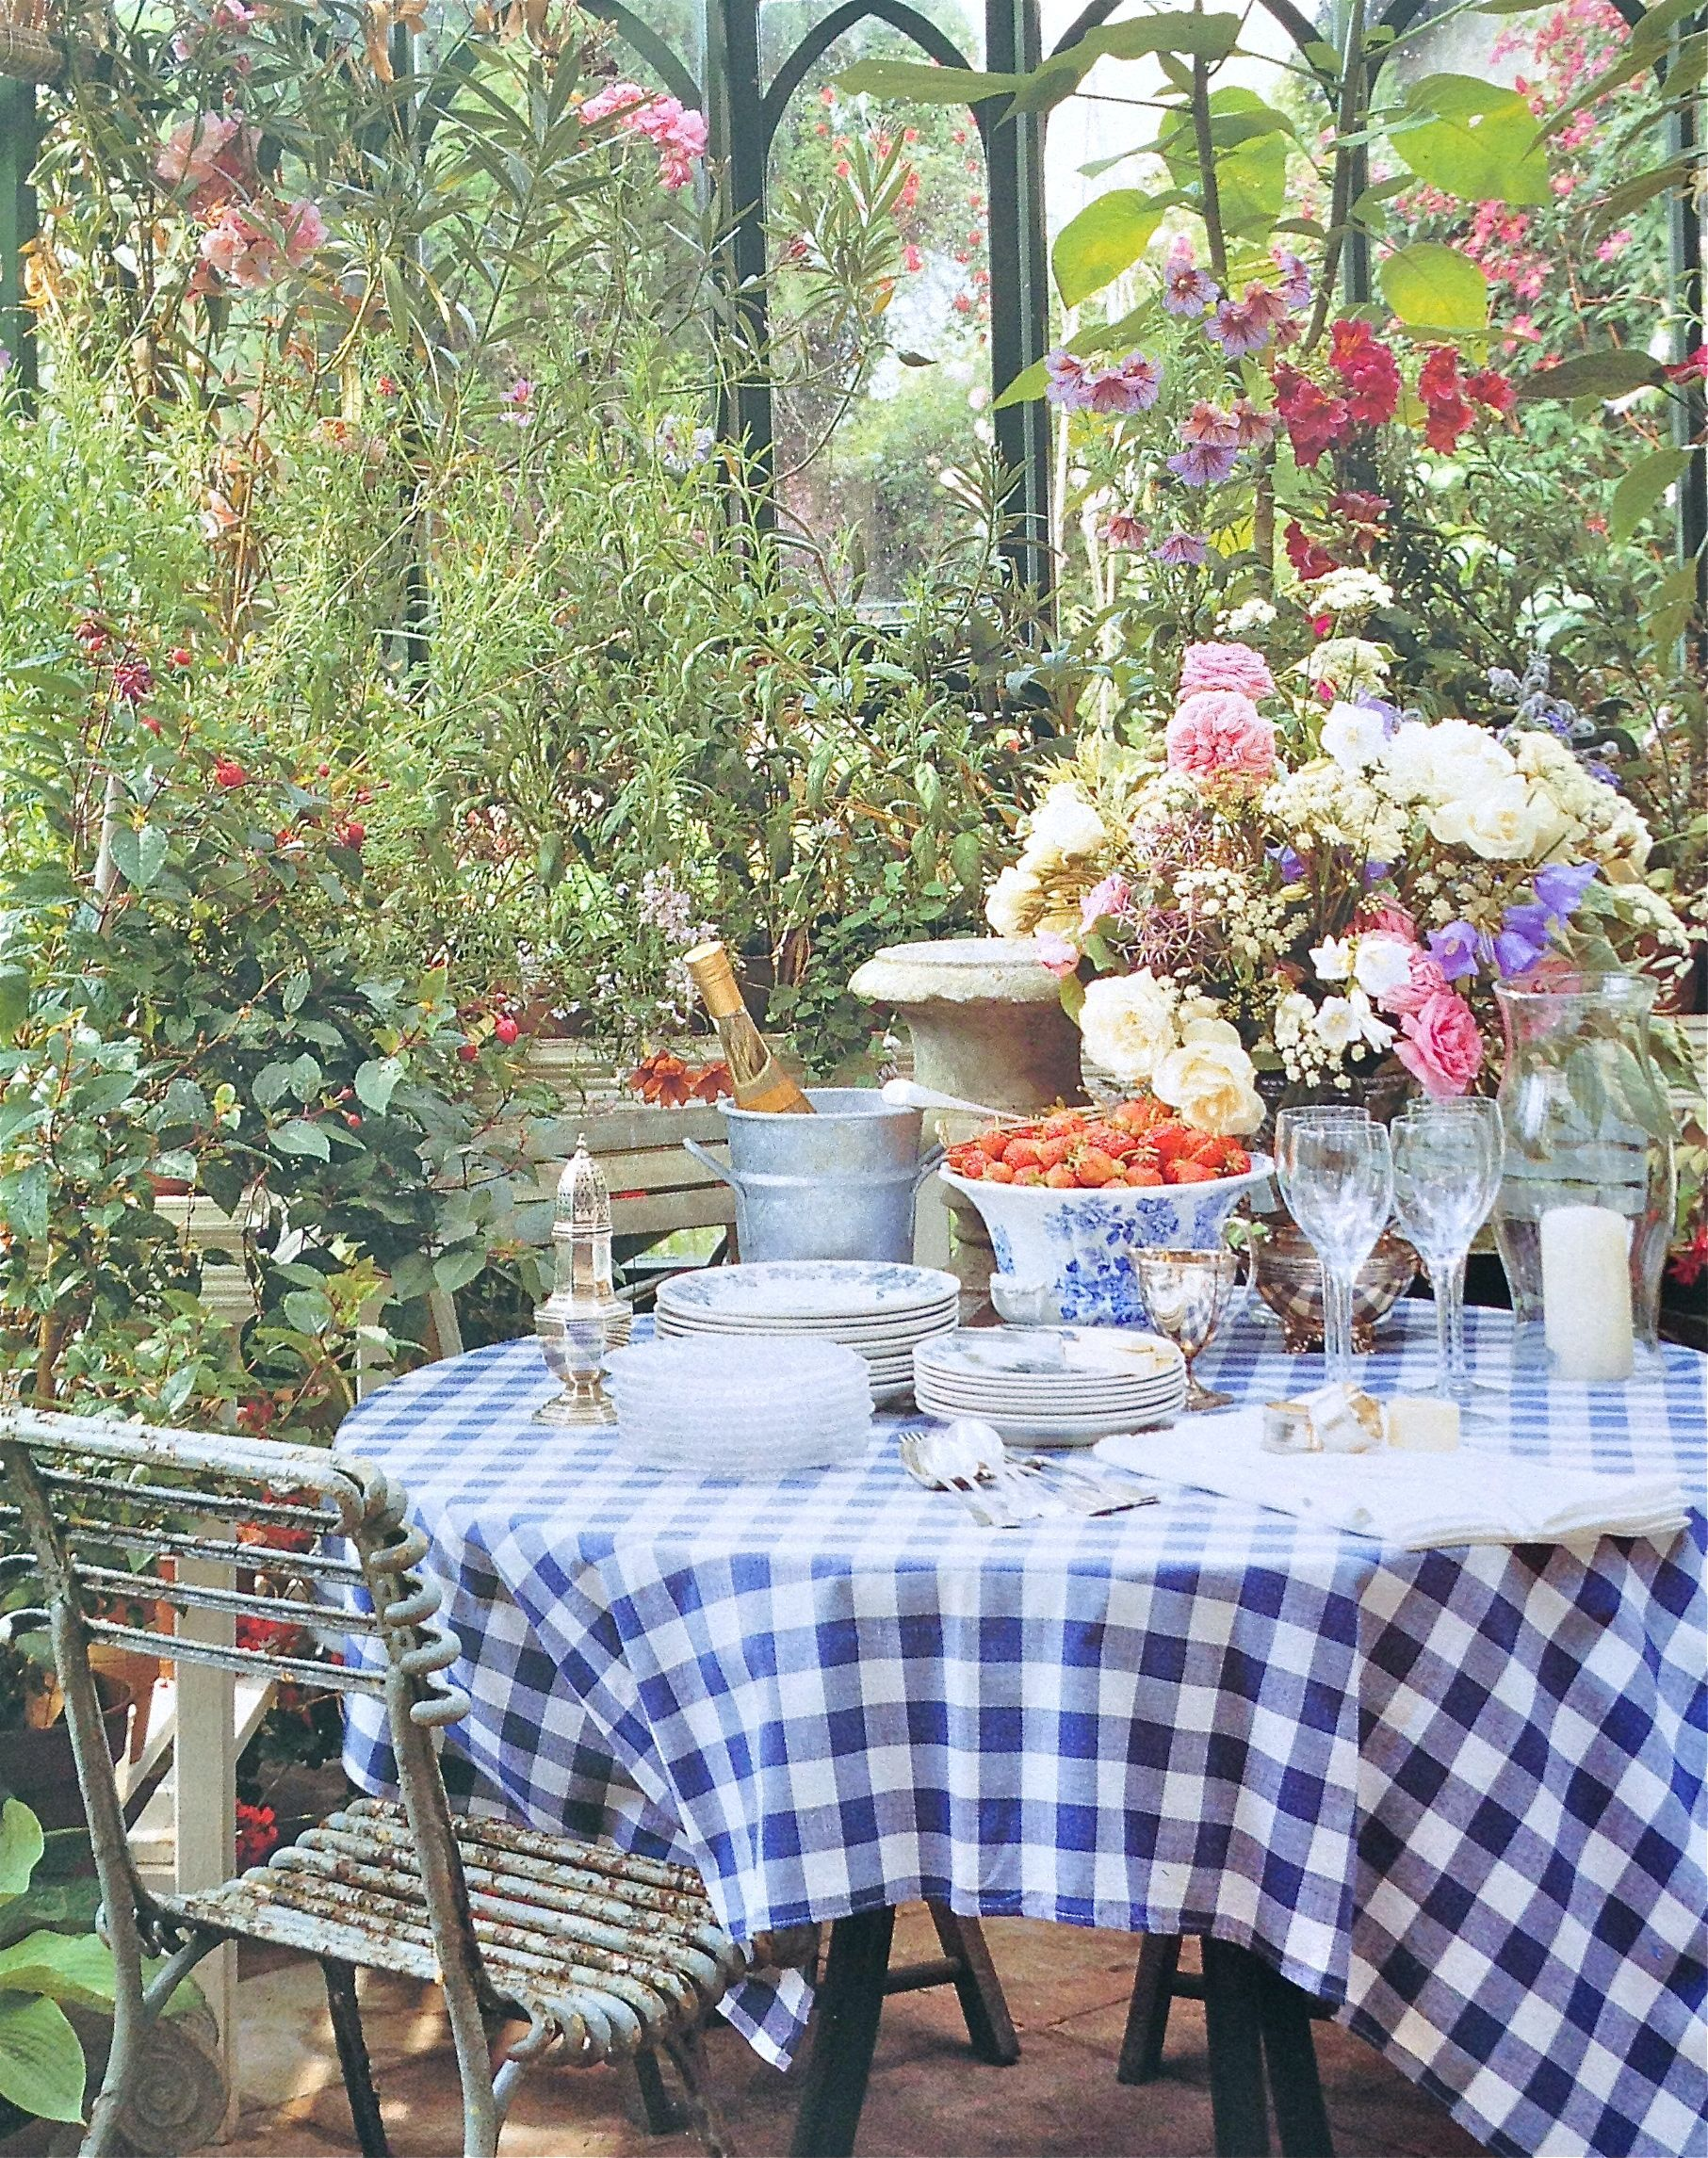 Garden Lunch In The Conservatory    Itu0027s All About The Blue U0026 White Checked  Tablecloth